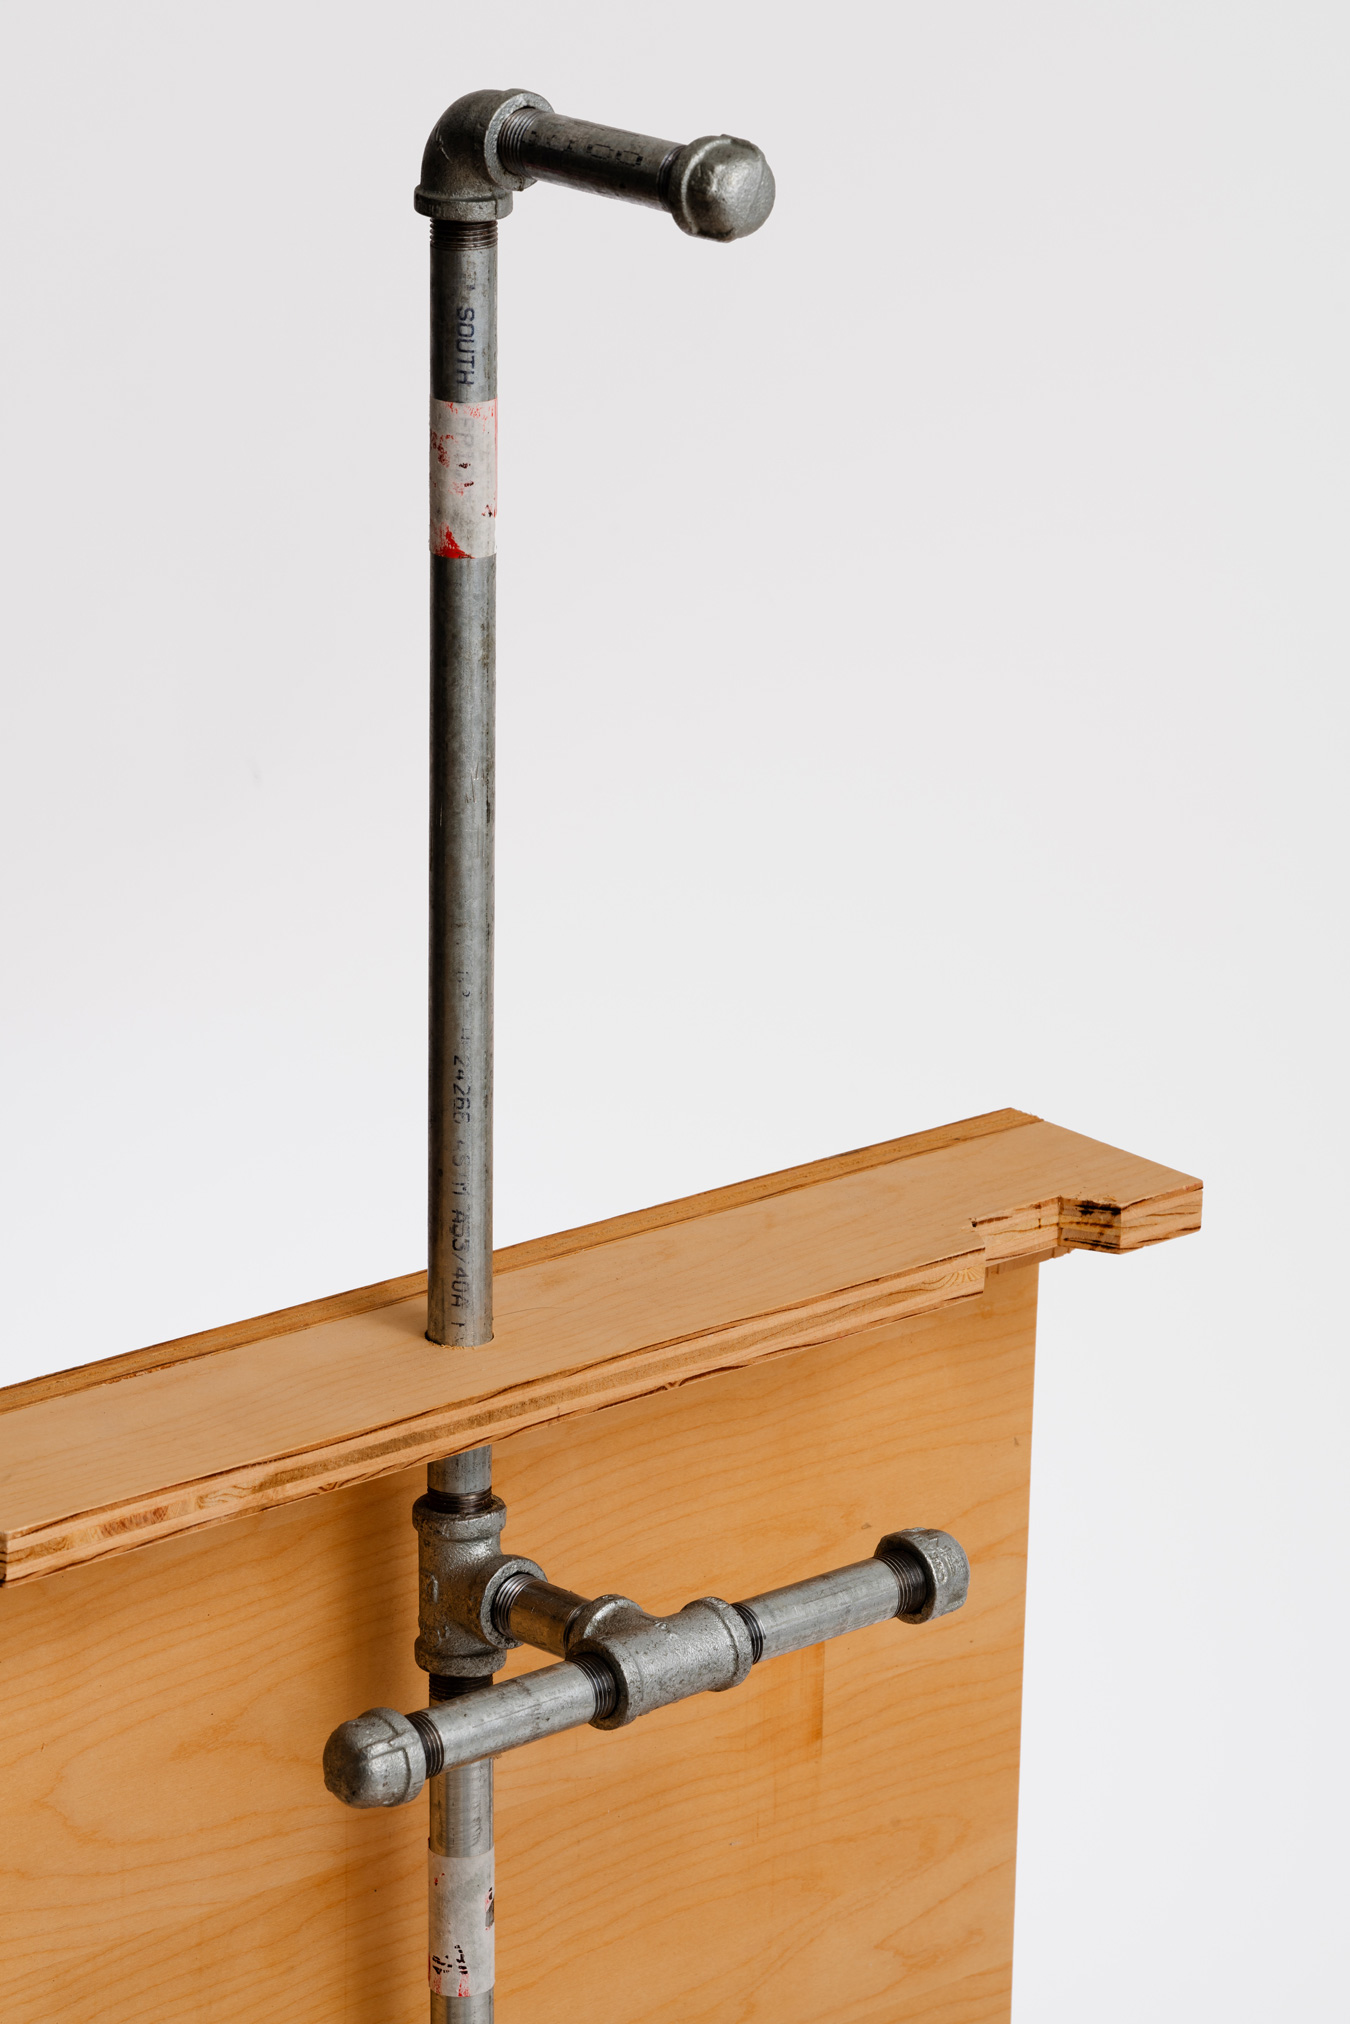 Wood box with back pipe tree